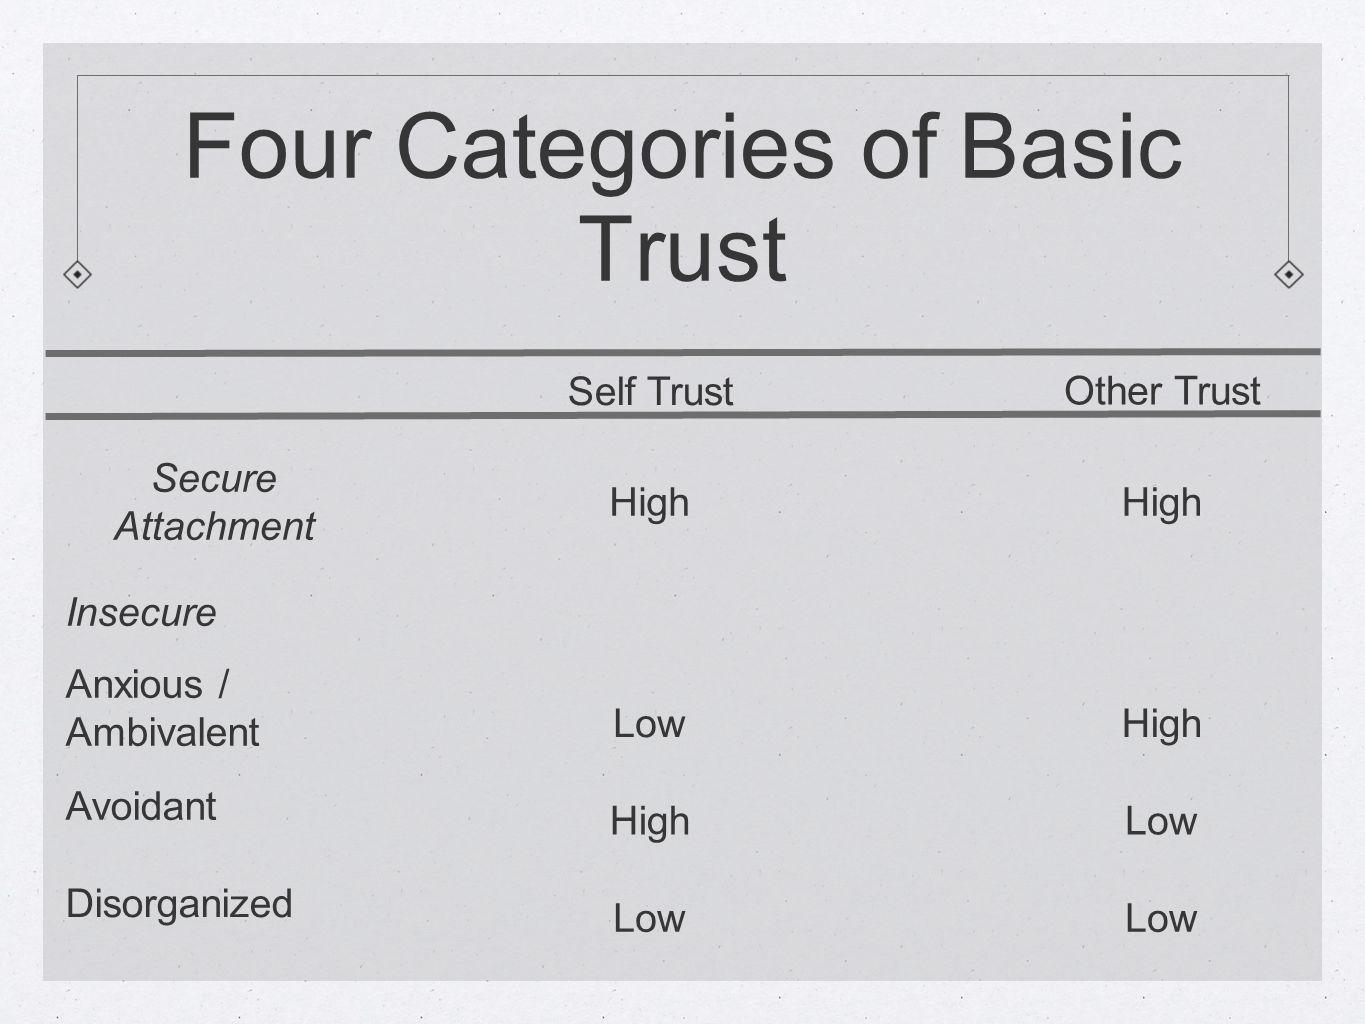 Four Categories of Basic Trust